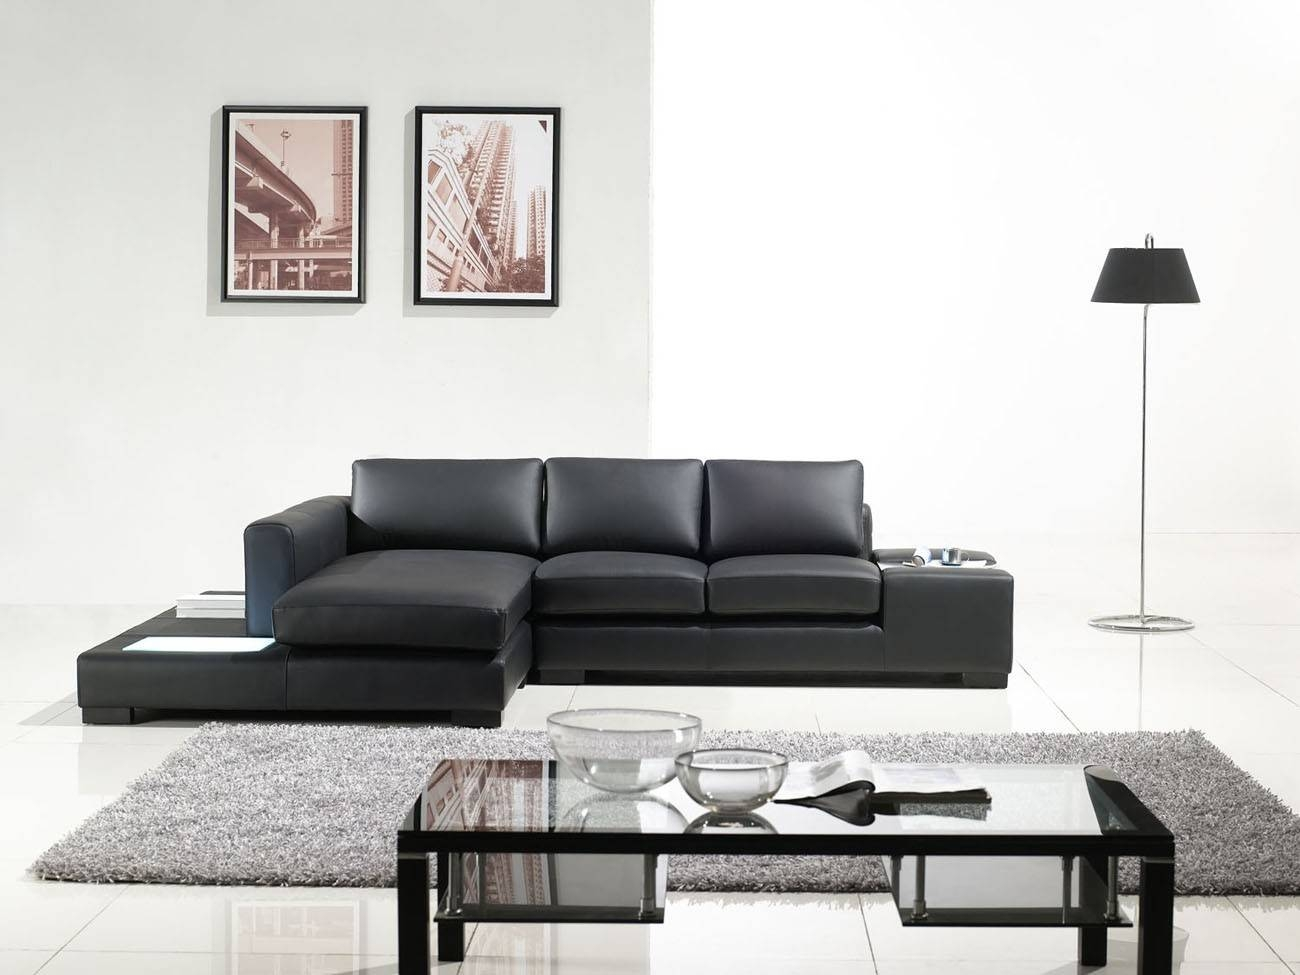 Www.flapstores/images/do/tosh-Furniture-Modern regarding Compact Sectional Sofas (Image 21 of 30)